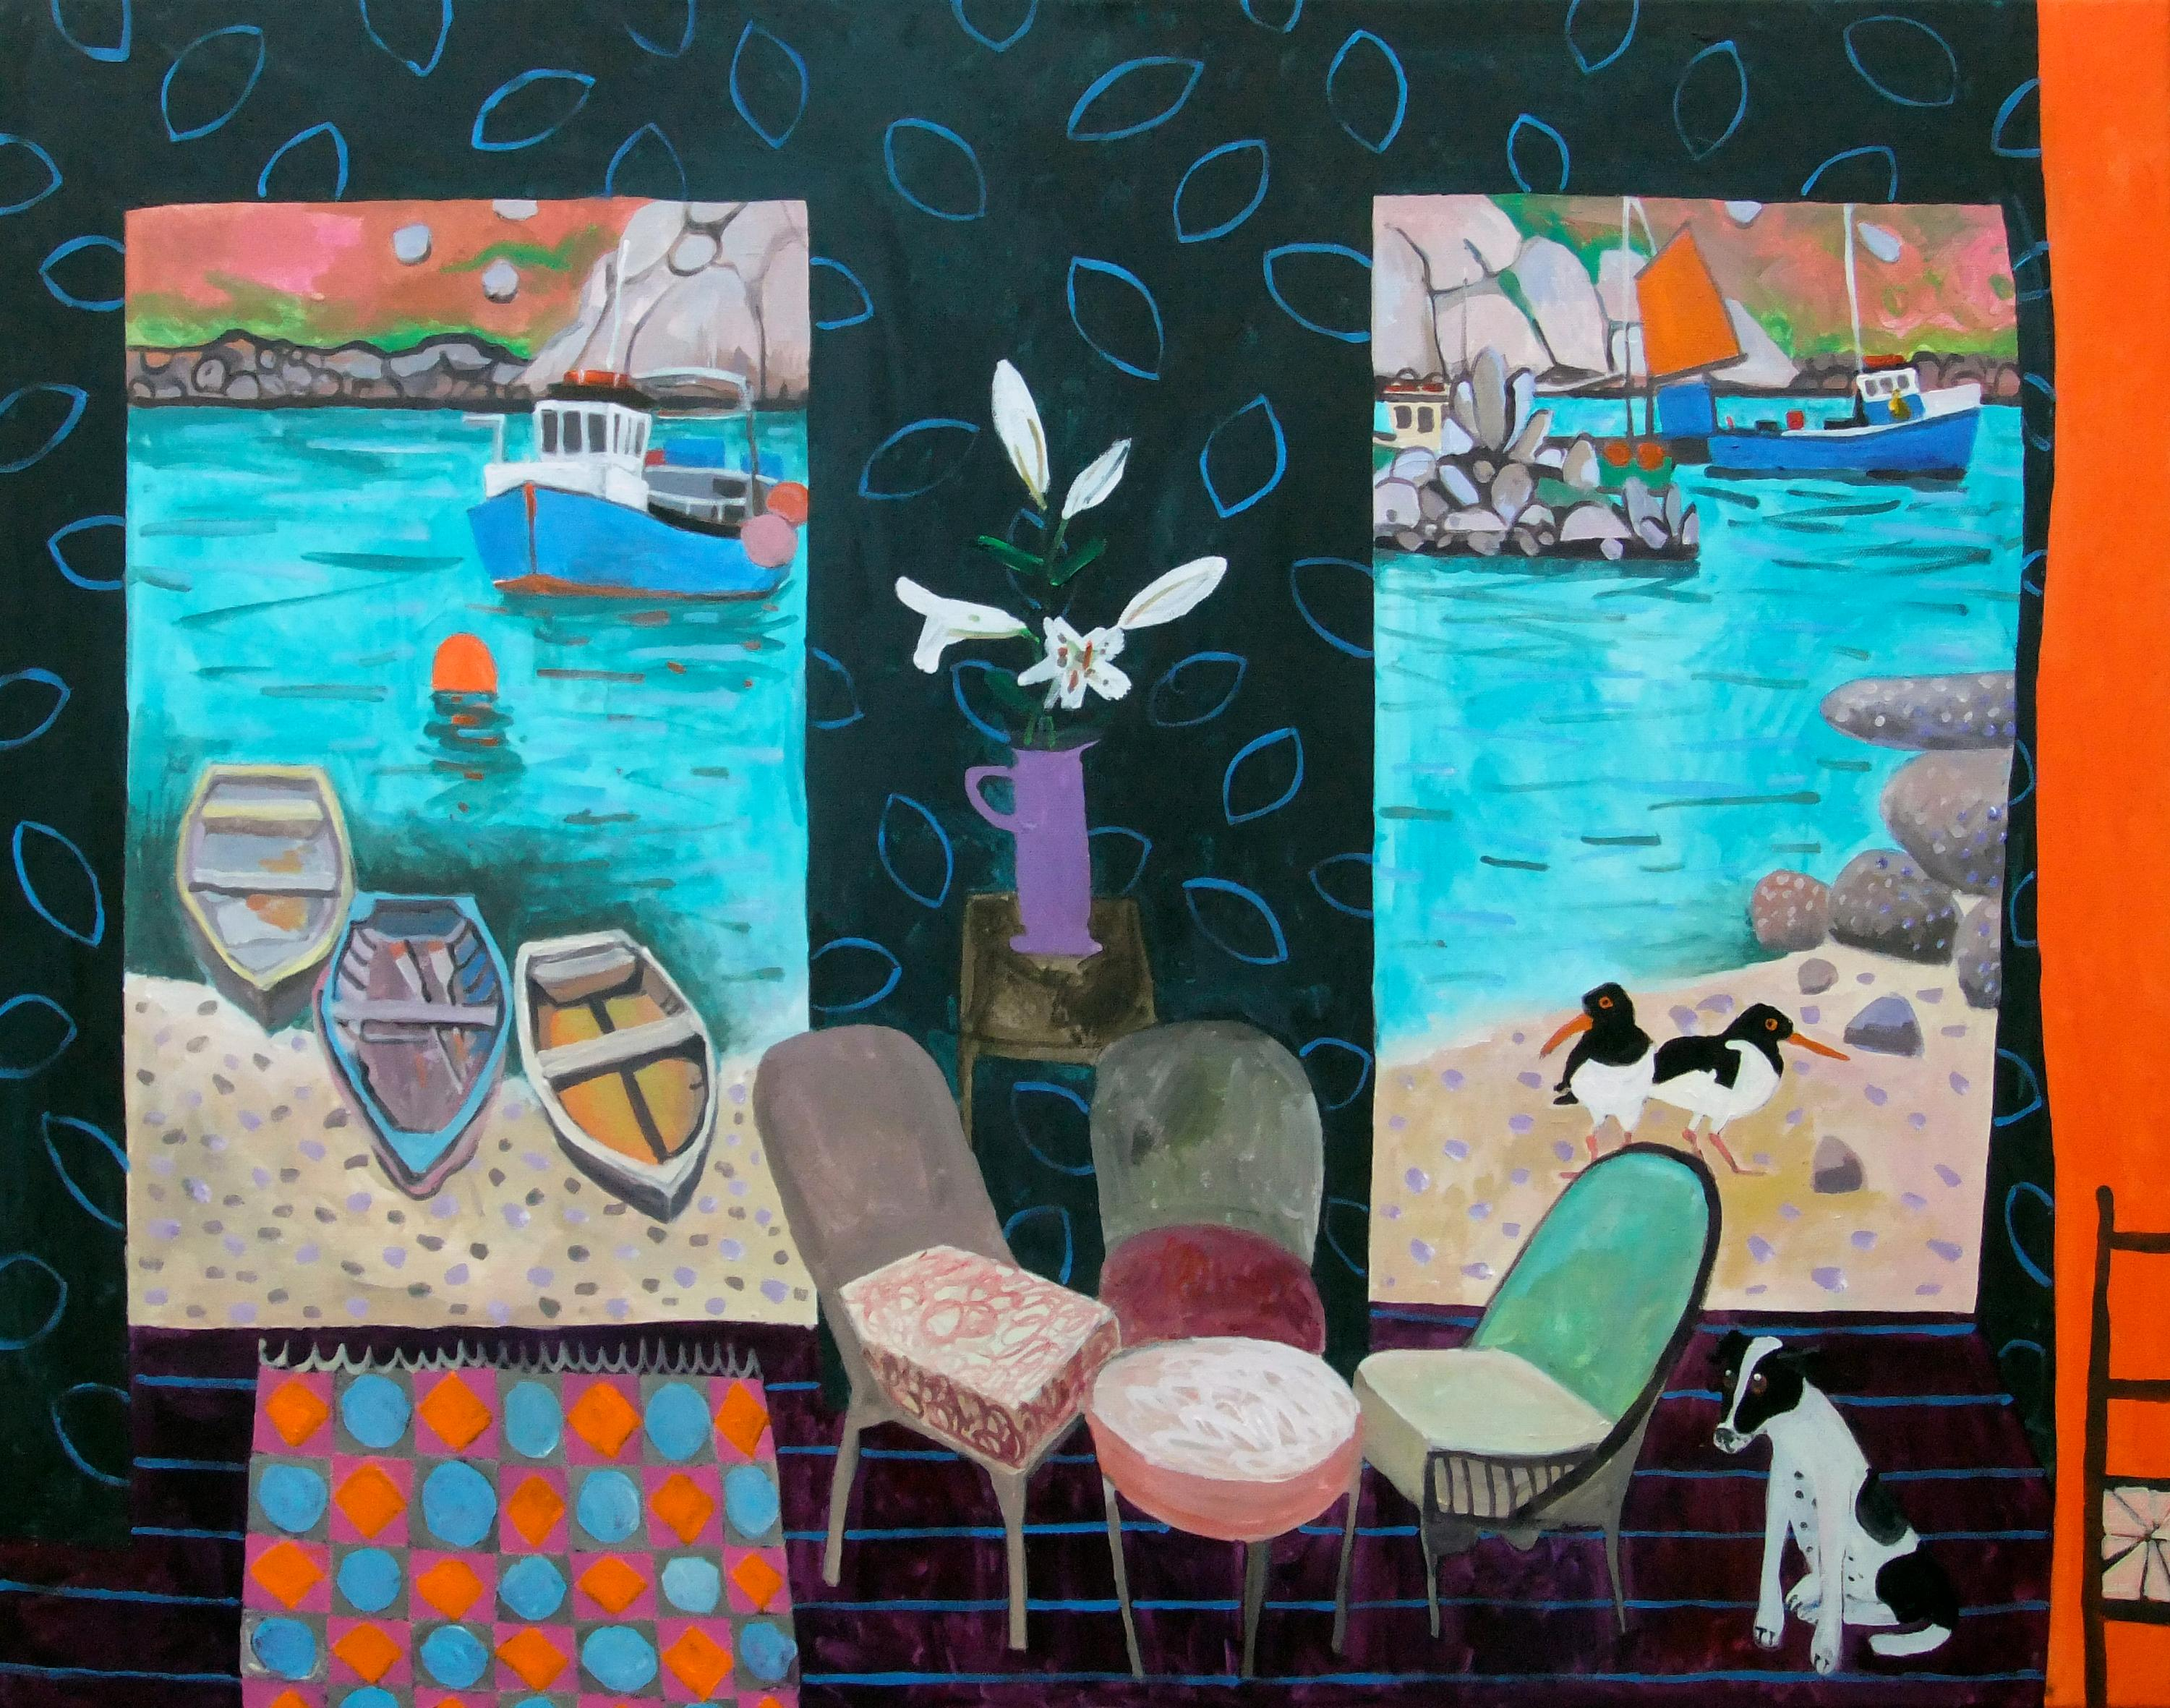 'Channel' Colourful Contemporary Interior Painting with harbour, boats & dog